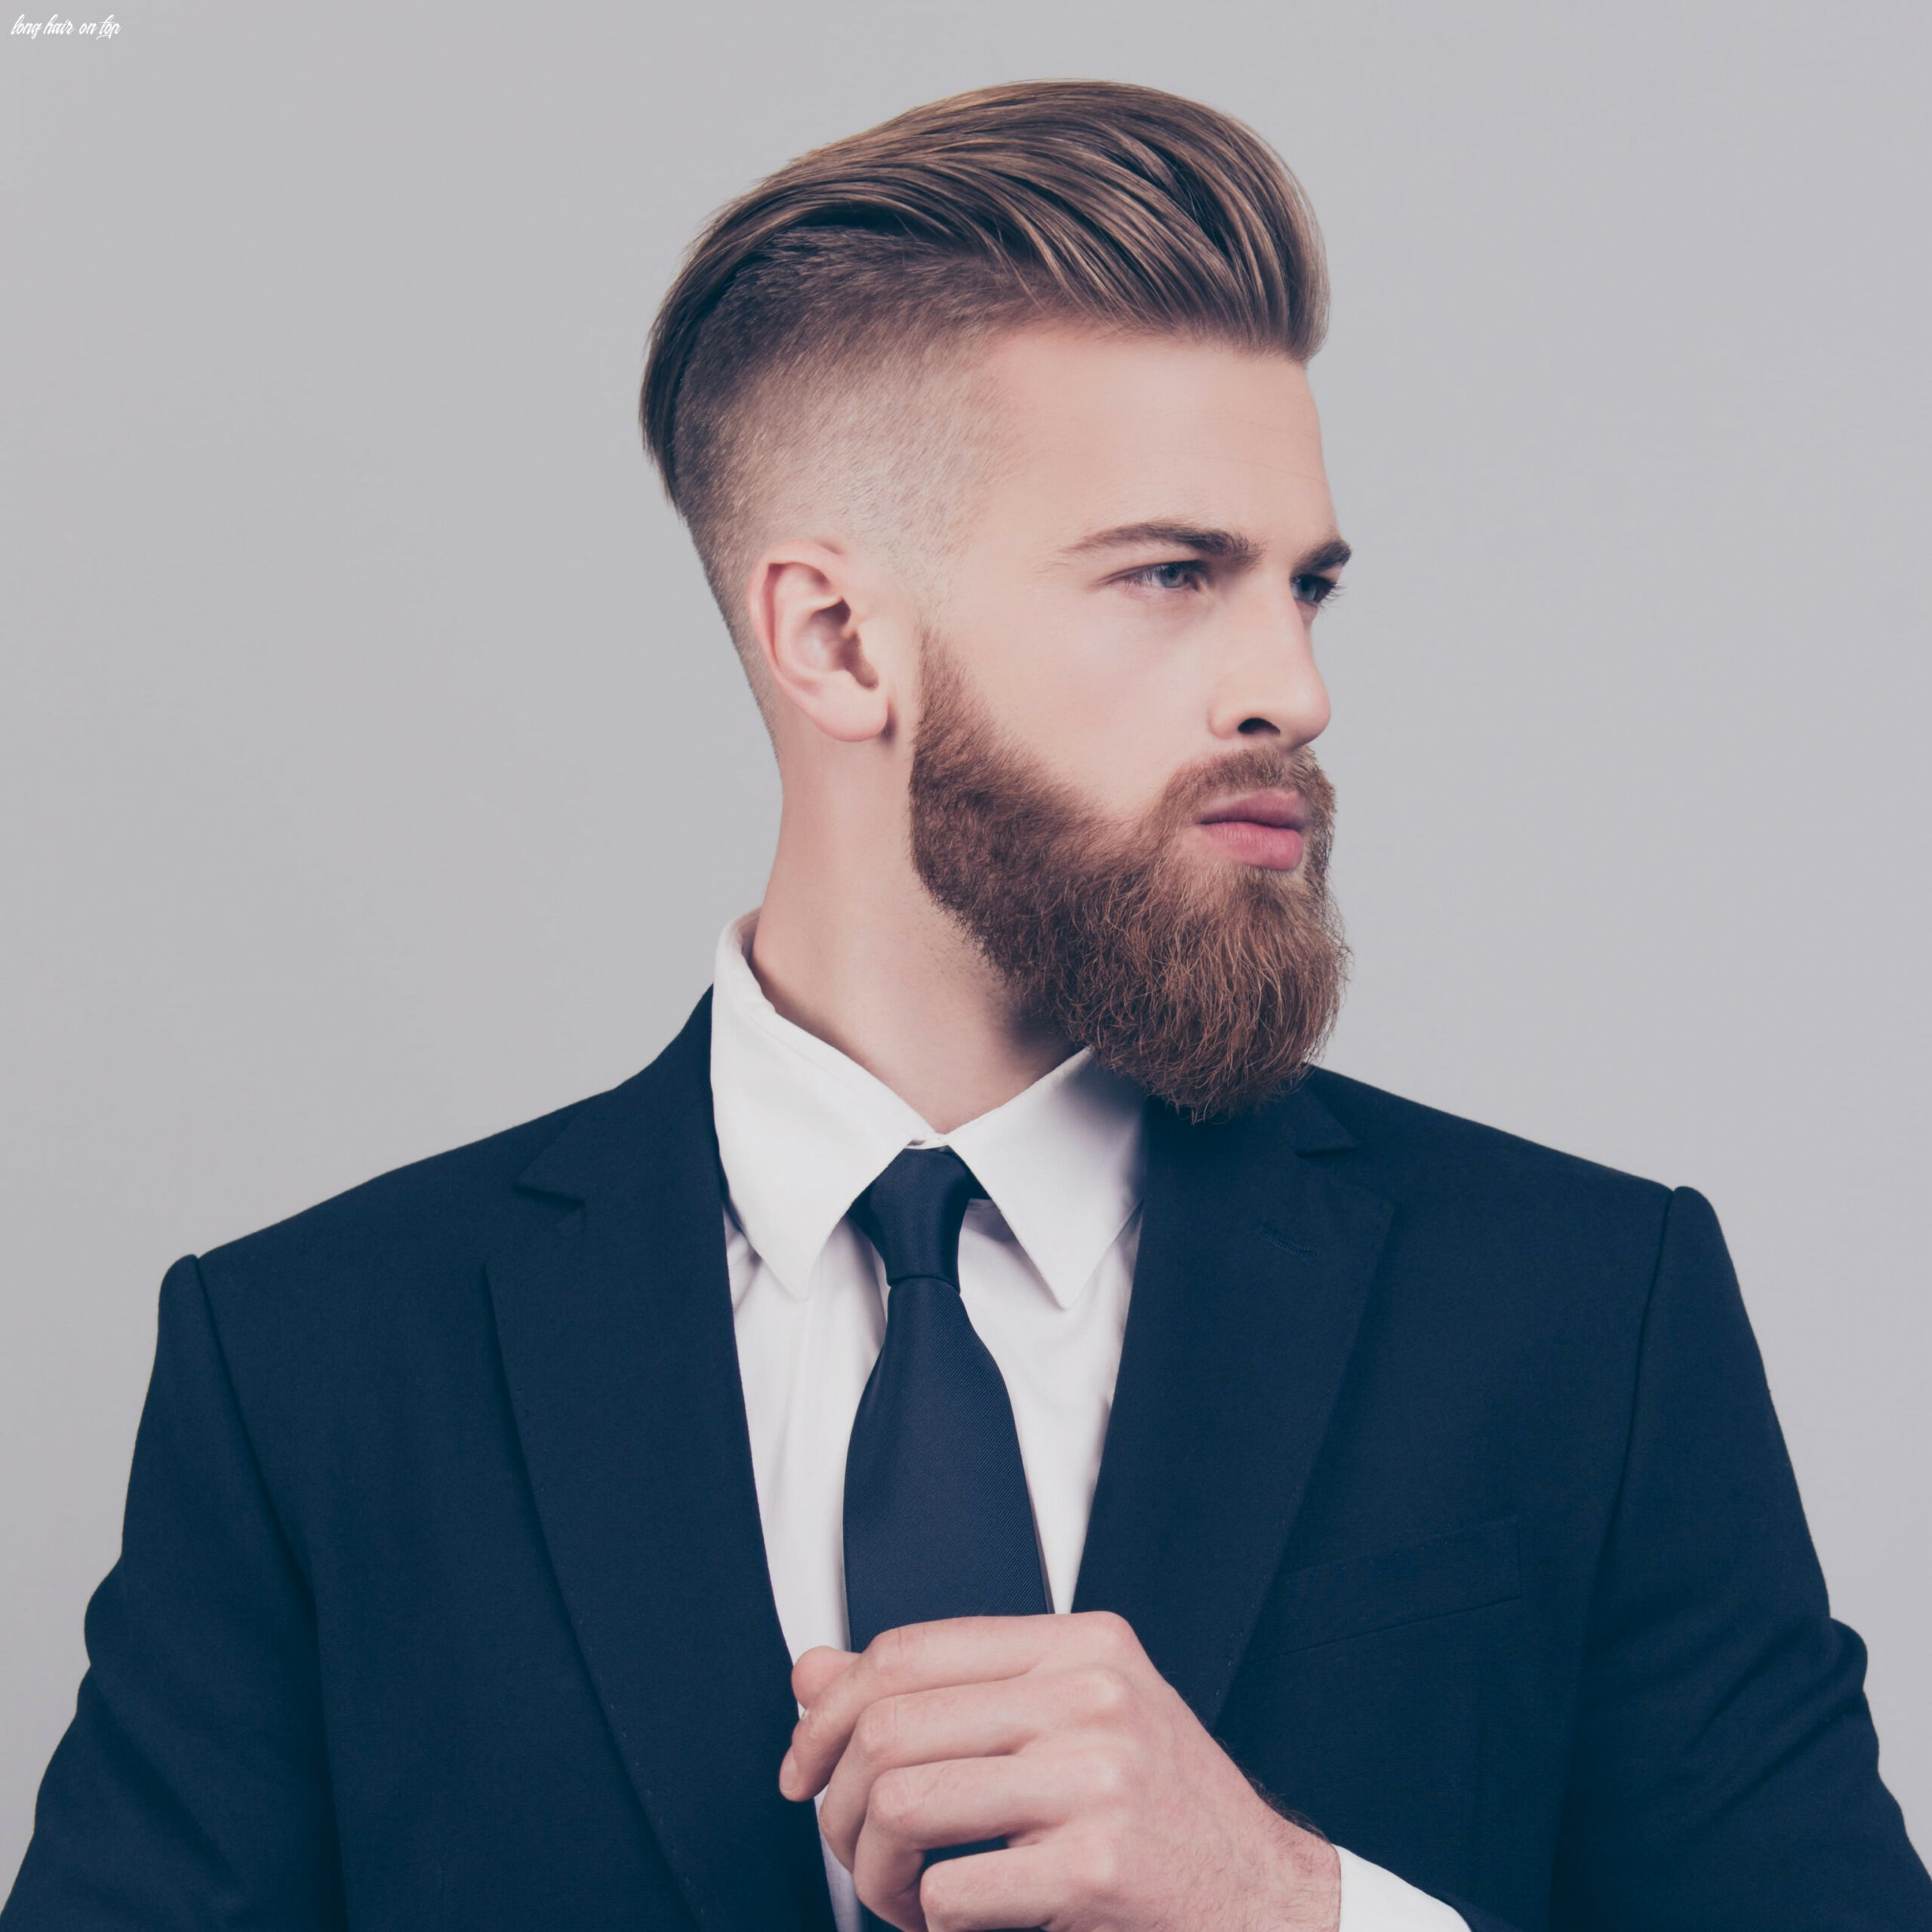 The best of both worlds: short sides & long top   haircut inspiration long hair on top